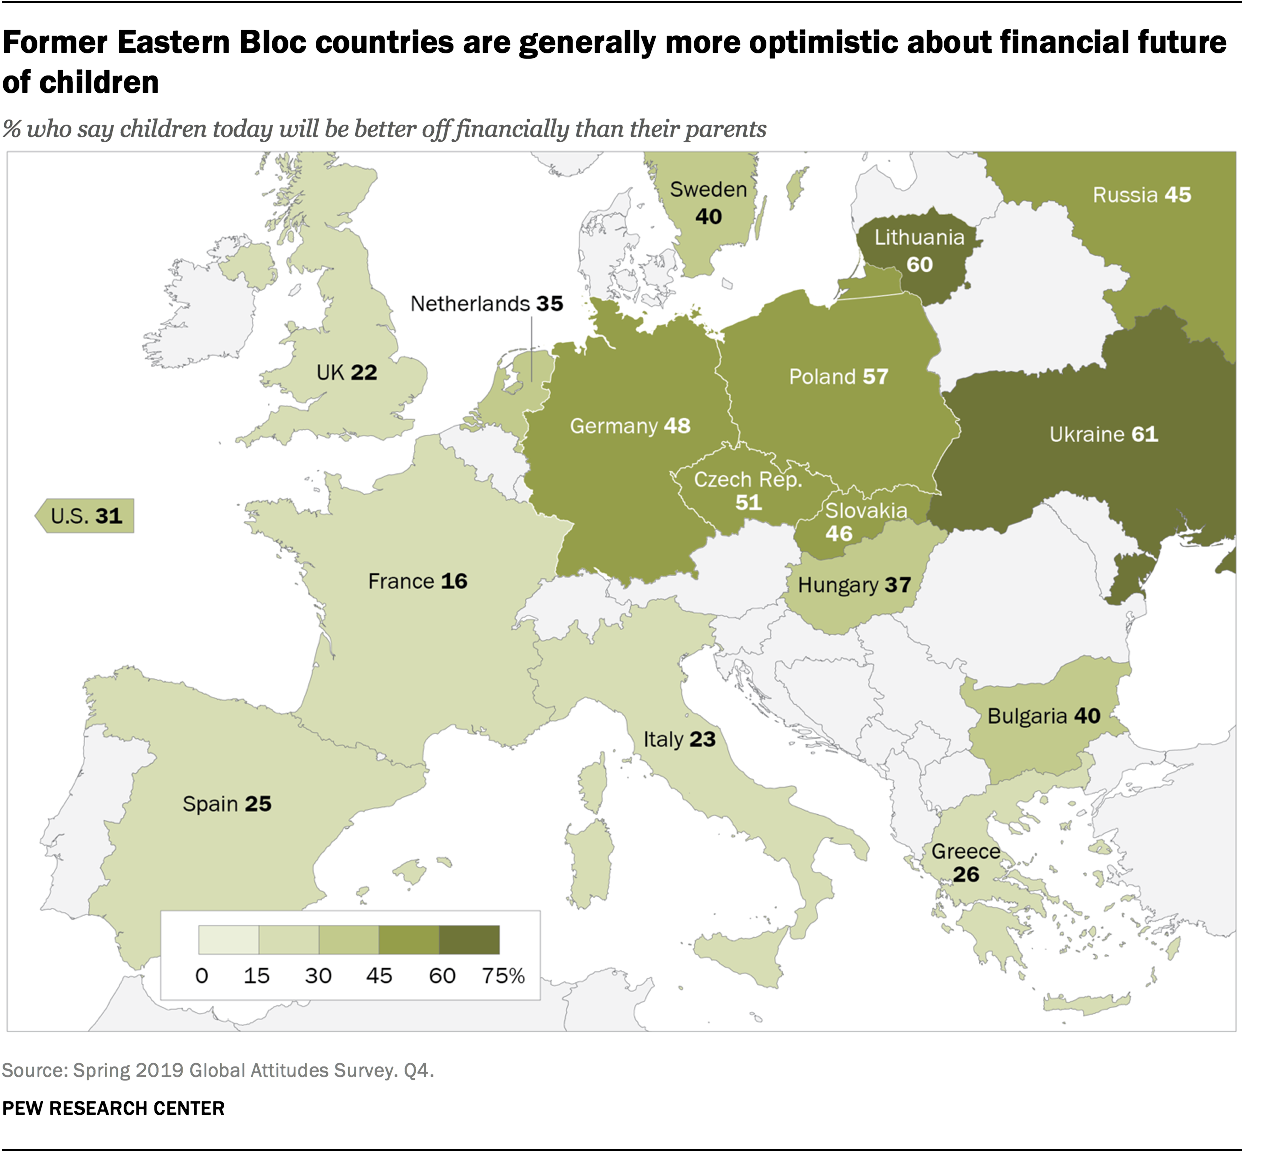 Former Eastern Bloc countries are generally more optimistic about financial future of children